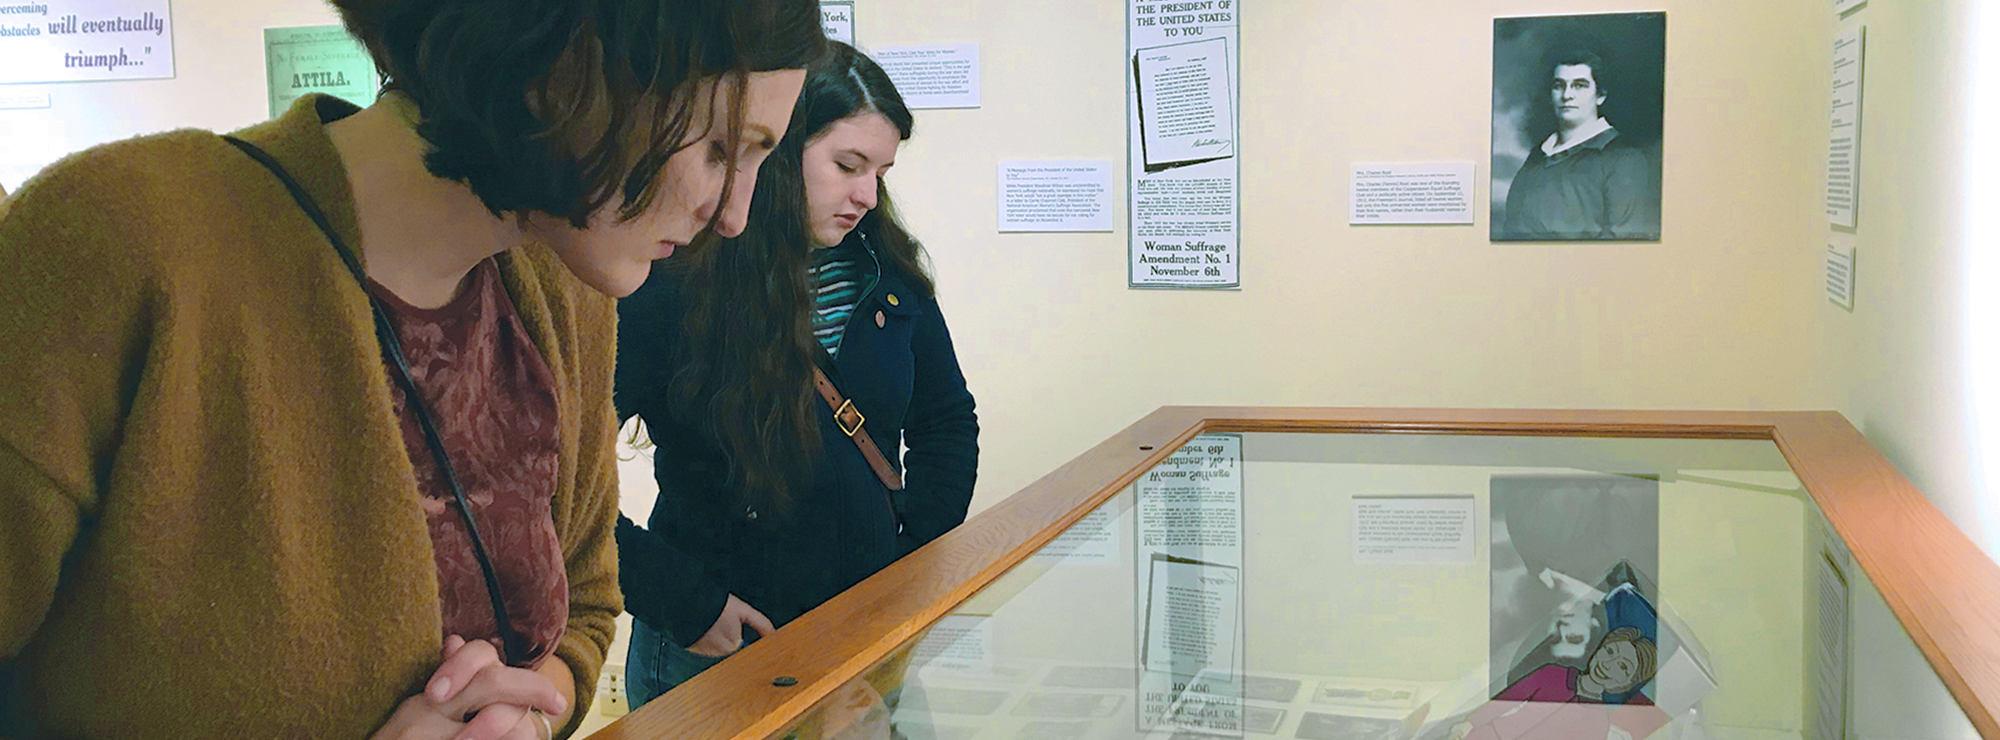 Two young women seen in a museum setting looking at displays.